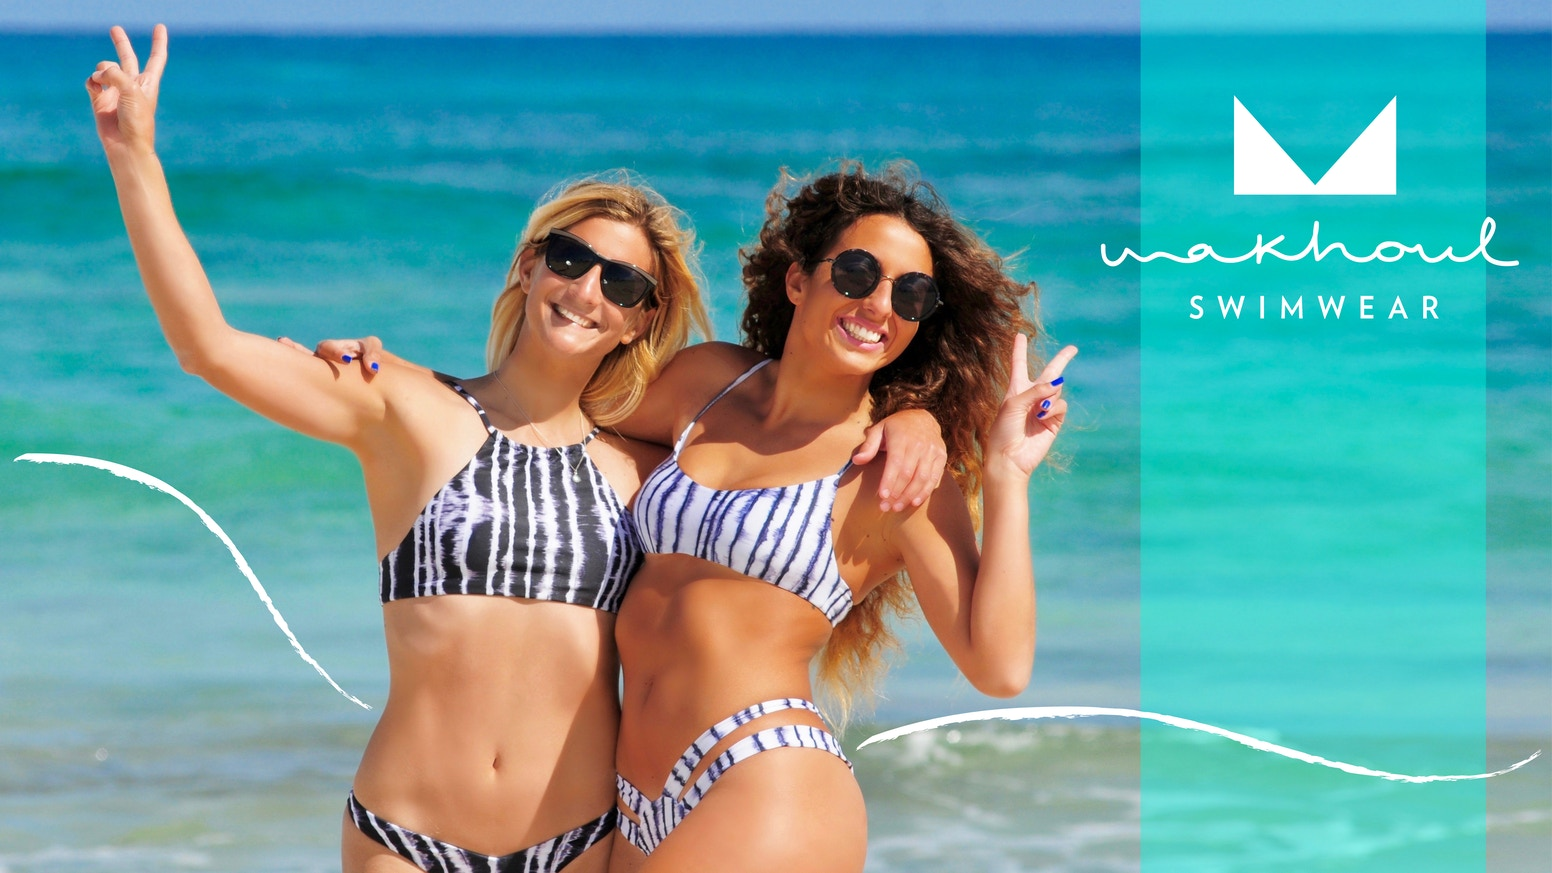 Swimsuits & bikinis for beach lovers & active women! Live life freely!!